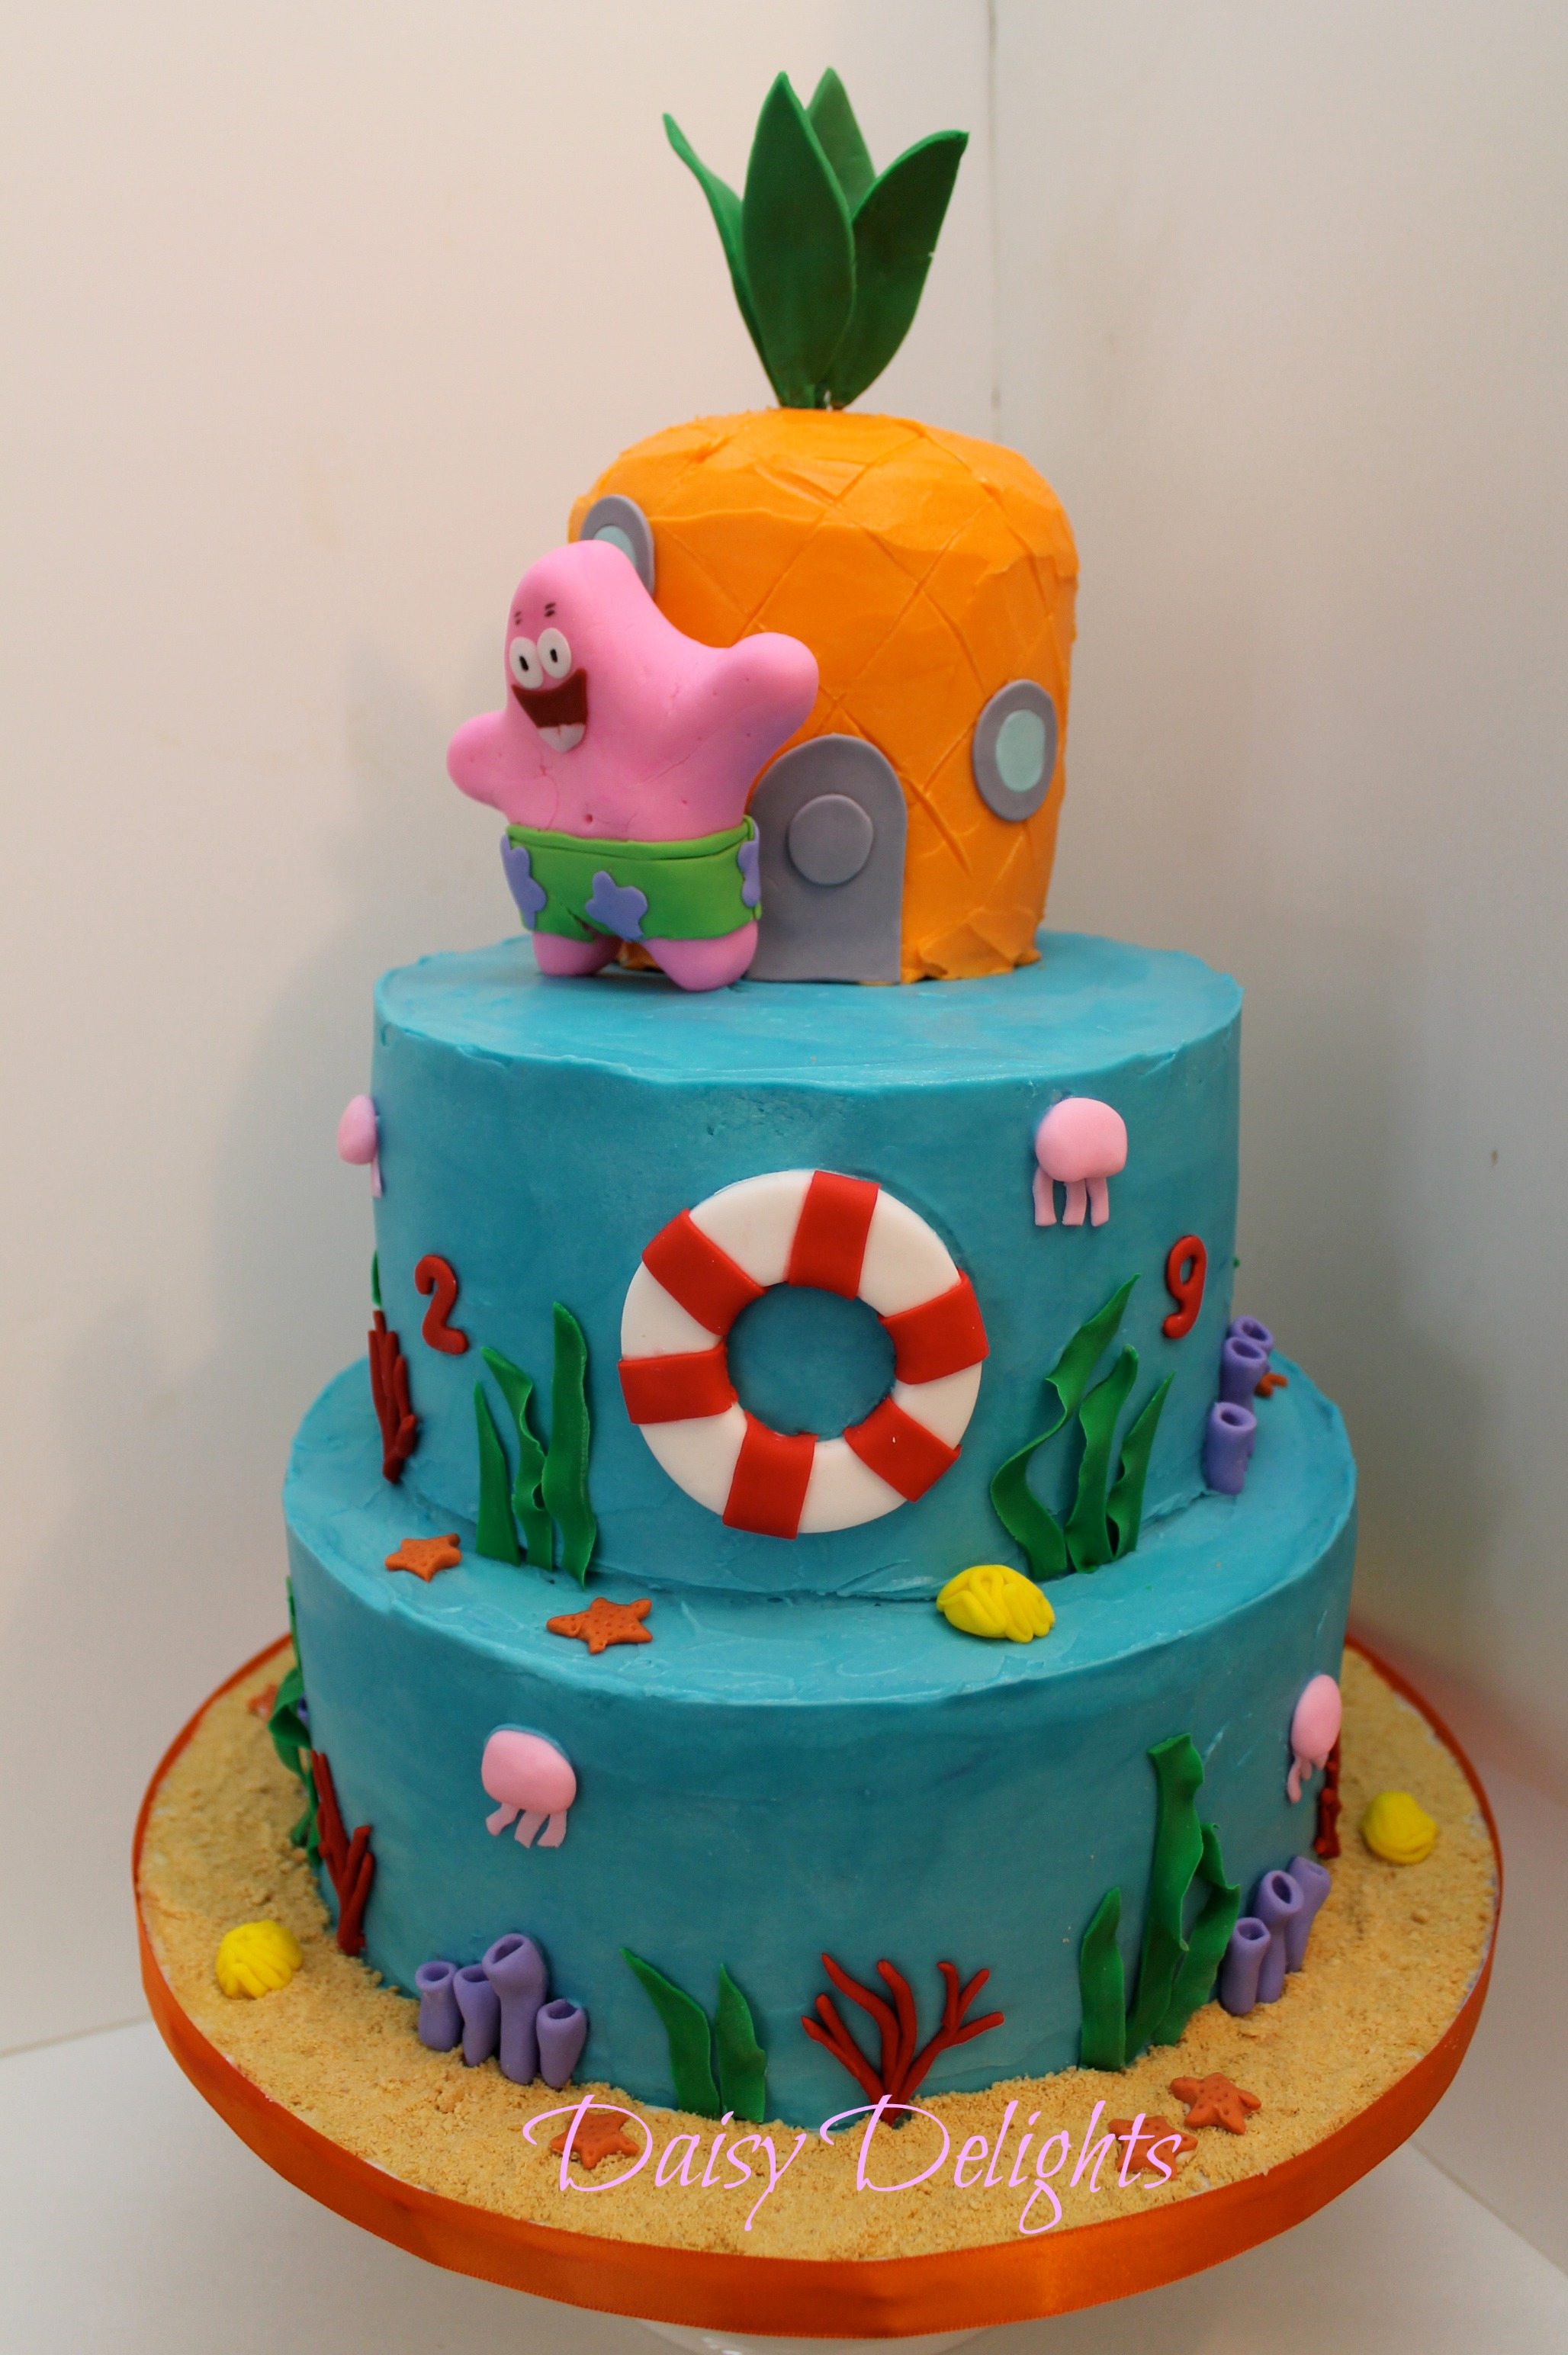 Spongebob Buttercream